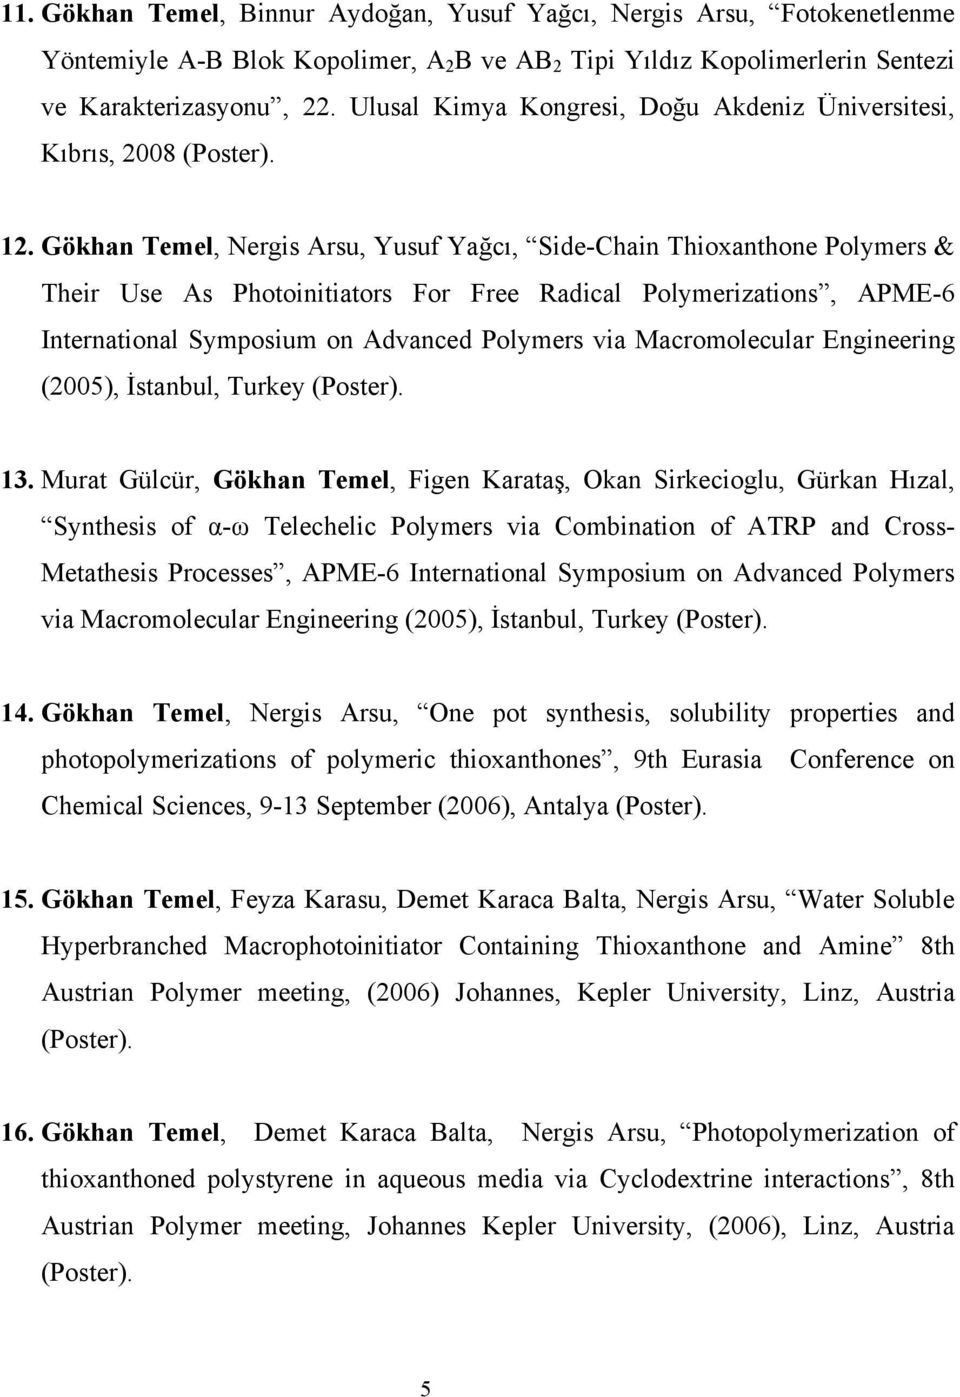 Gökhan Temel, Nergis Arsu, Yusuf Yağcı, Side-Chain Thioxanthone Polymers & Their Use As Photoinitiators For Free Radical Polymerizations, APME-6 International Symposium on Advanced Polymers via